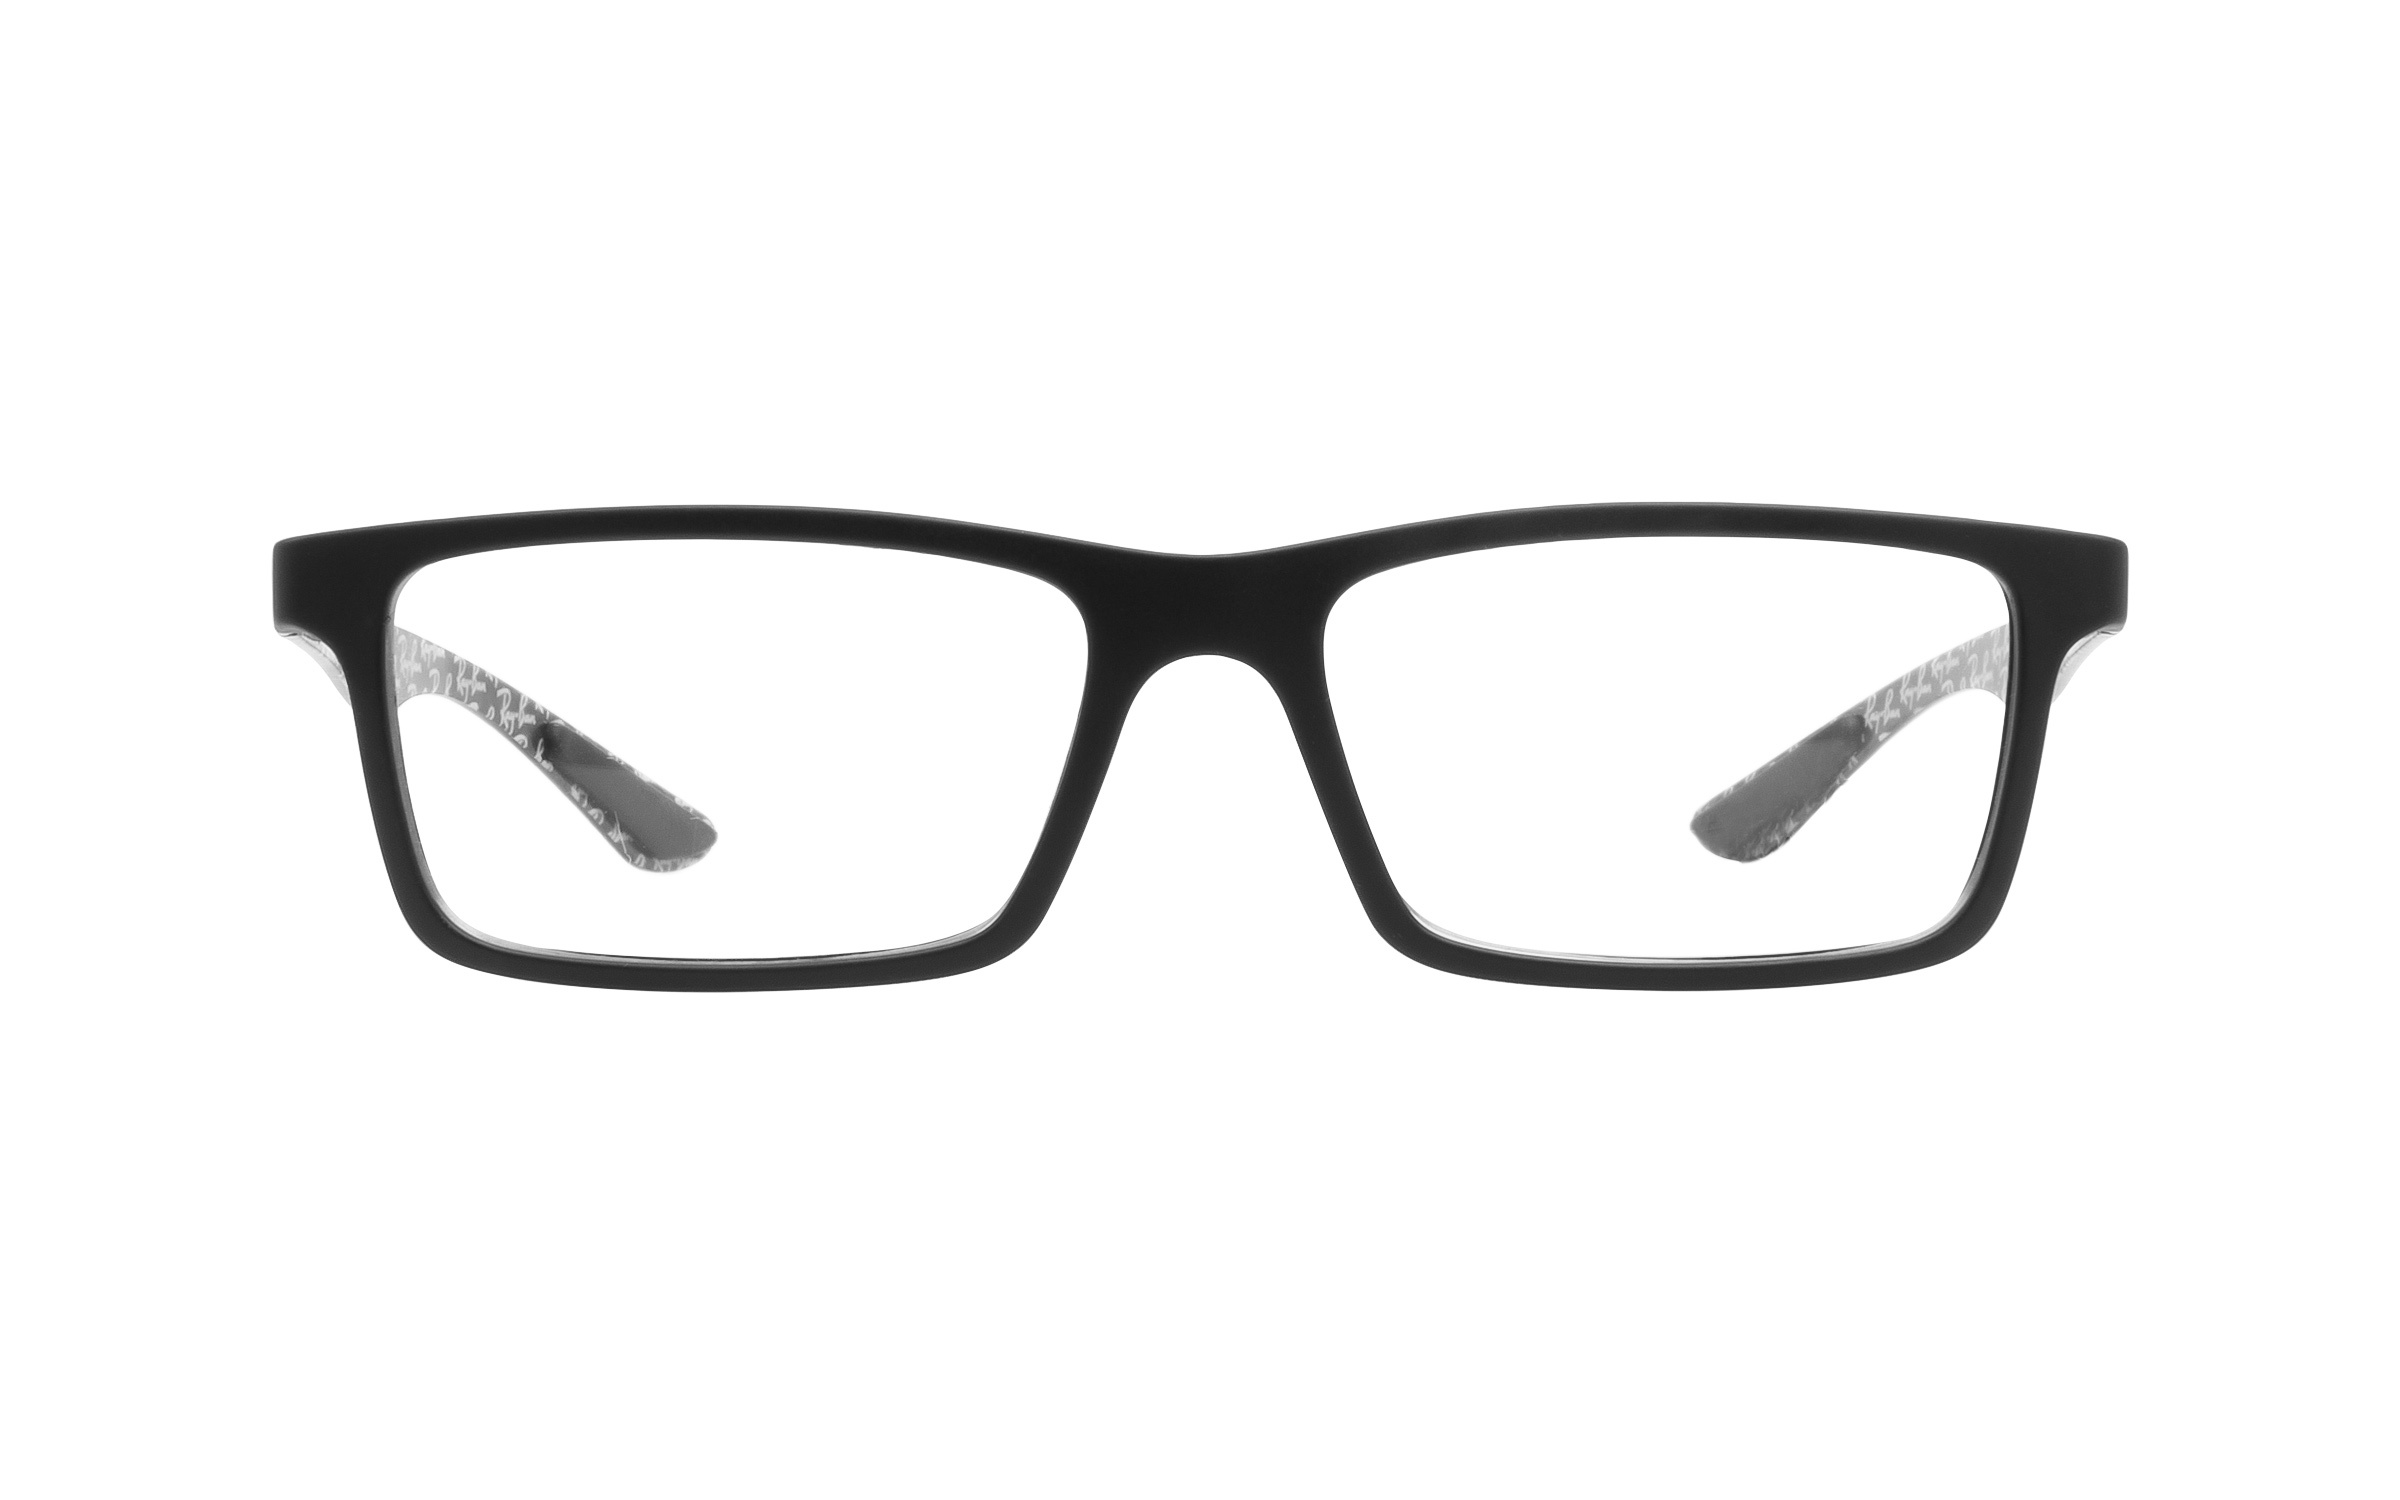 Luxottica Ray-Ban RB8901 5263 Eyeglasses and Frame in Black - Online Coastal